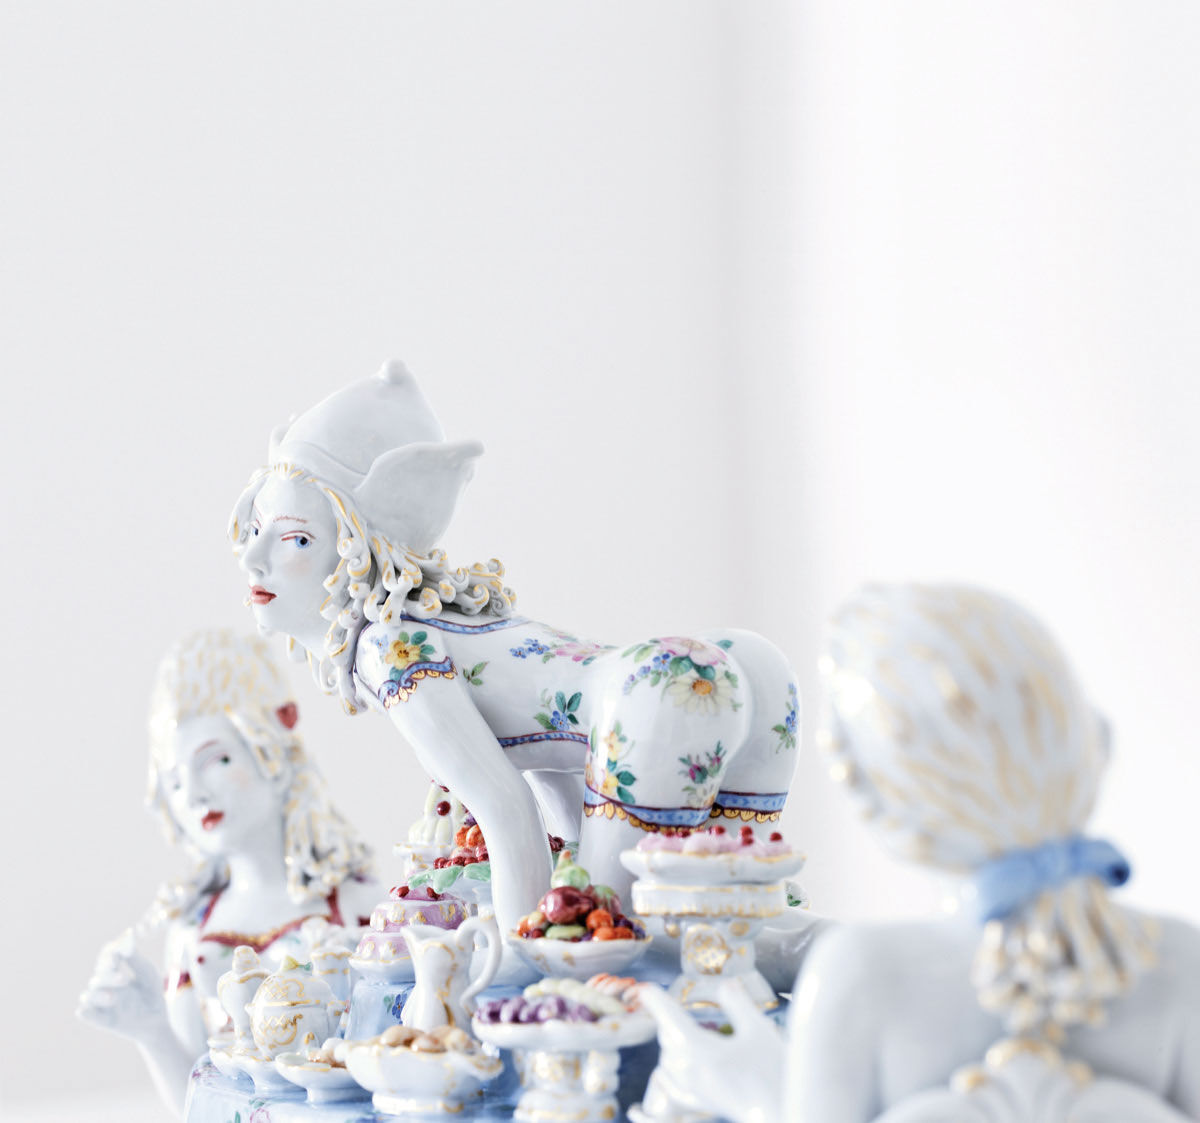 Chris Antemann, Covet, detail, 2013. Courtesy of MEISSEN artCAMPUS.